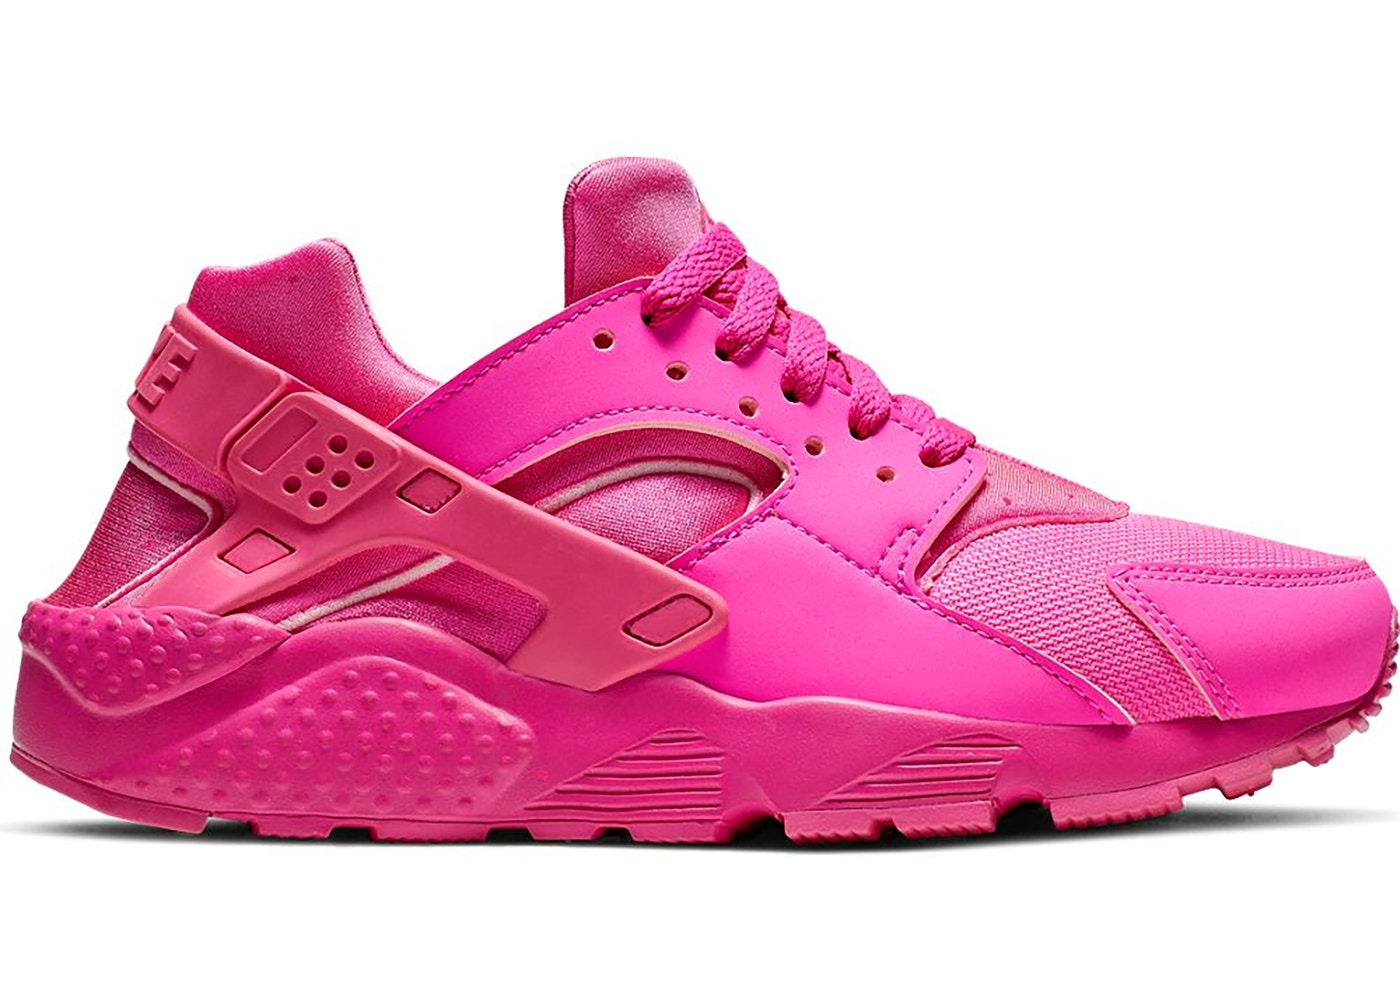 Nike Air Huarache Run Laser Fuchsia Gs 654275 607